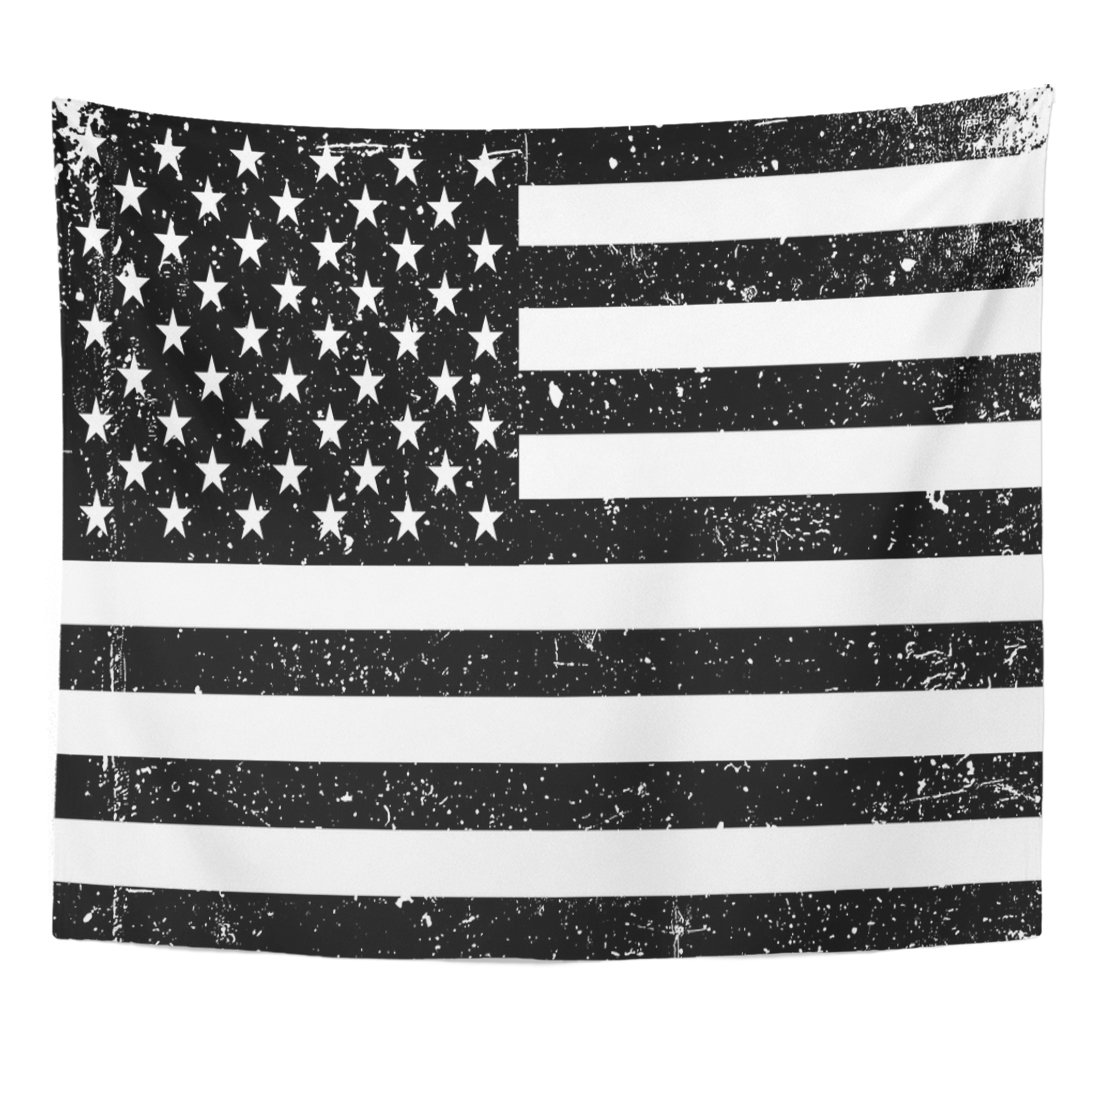 Emvency Tapestry Monochrome United States of America Flag Black and White Home Decor Wall Hanging for Living Room Bedroom Dorm 50x60 inches